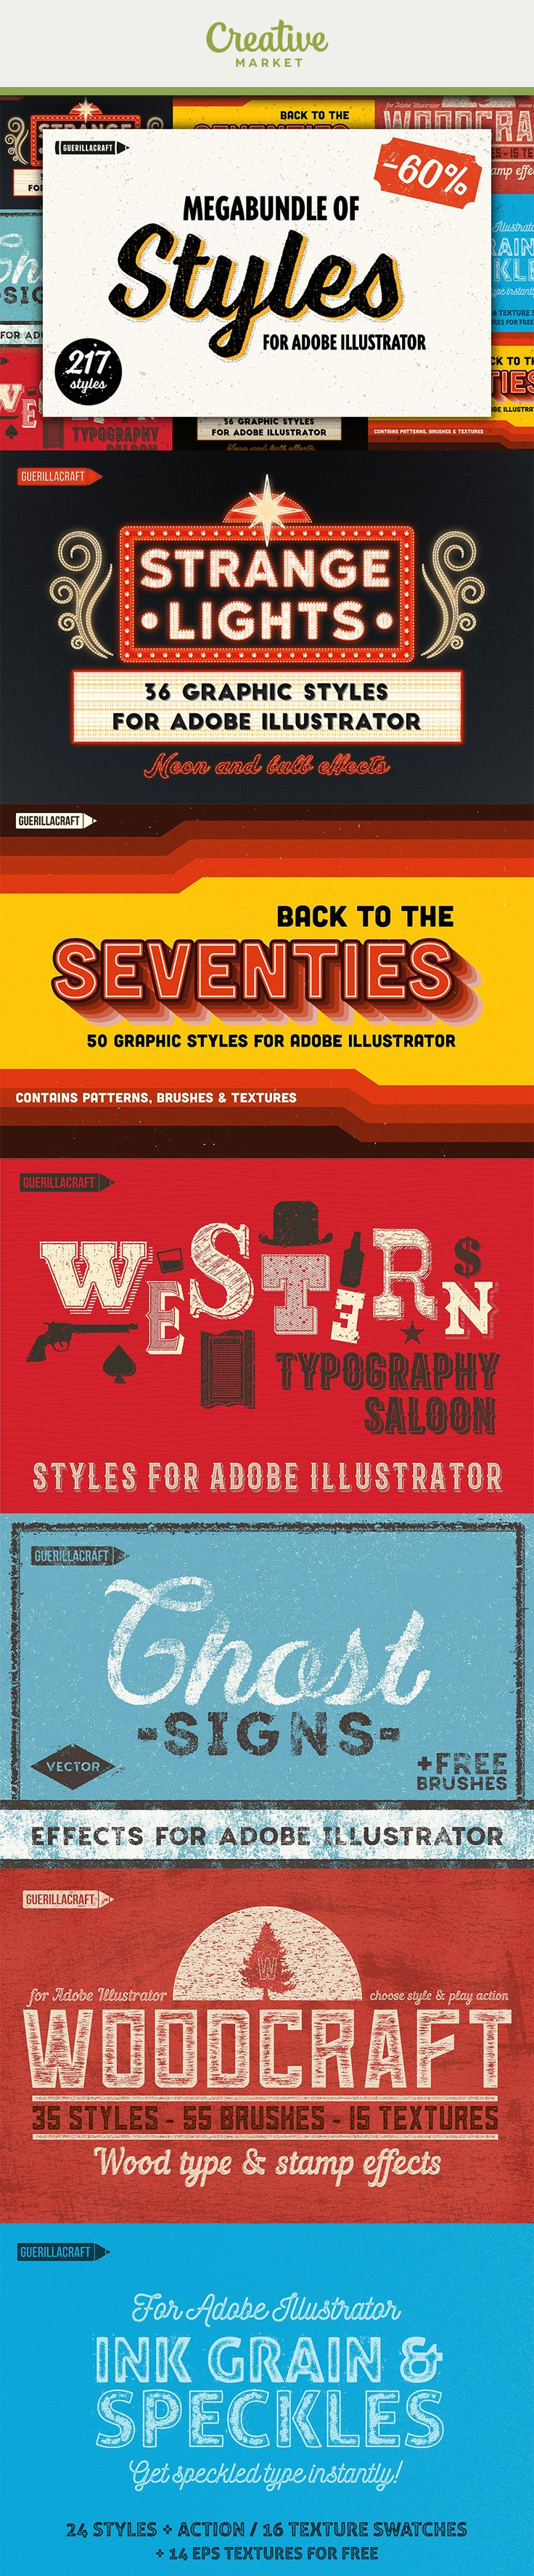 Ad: Megabundle of Styles for Adobe Illustrator consists of 6 Guerillacraft products containing 217 styles for Adobe Illustrator.With a few clicks, you will get amazing vector effects. You can use them with typography or one color logo design. With one purchase you will get a wide range of the effects inspired by retro and vintage typography graphic styles.